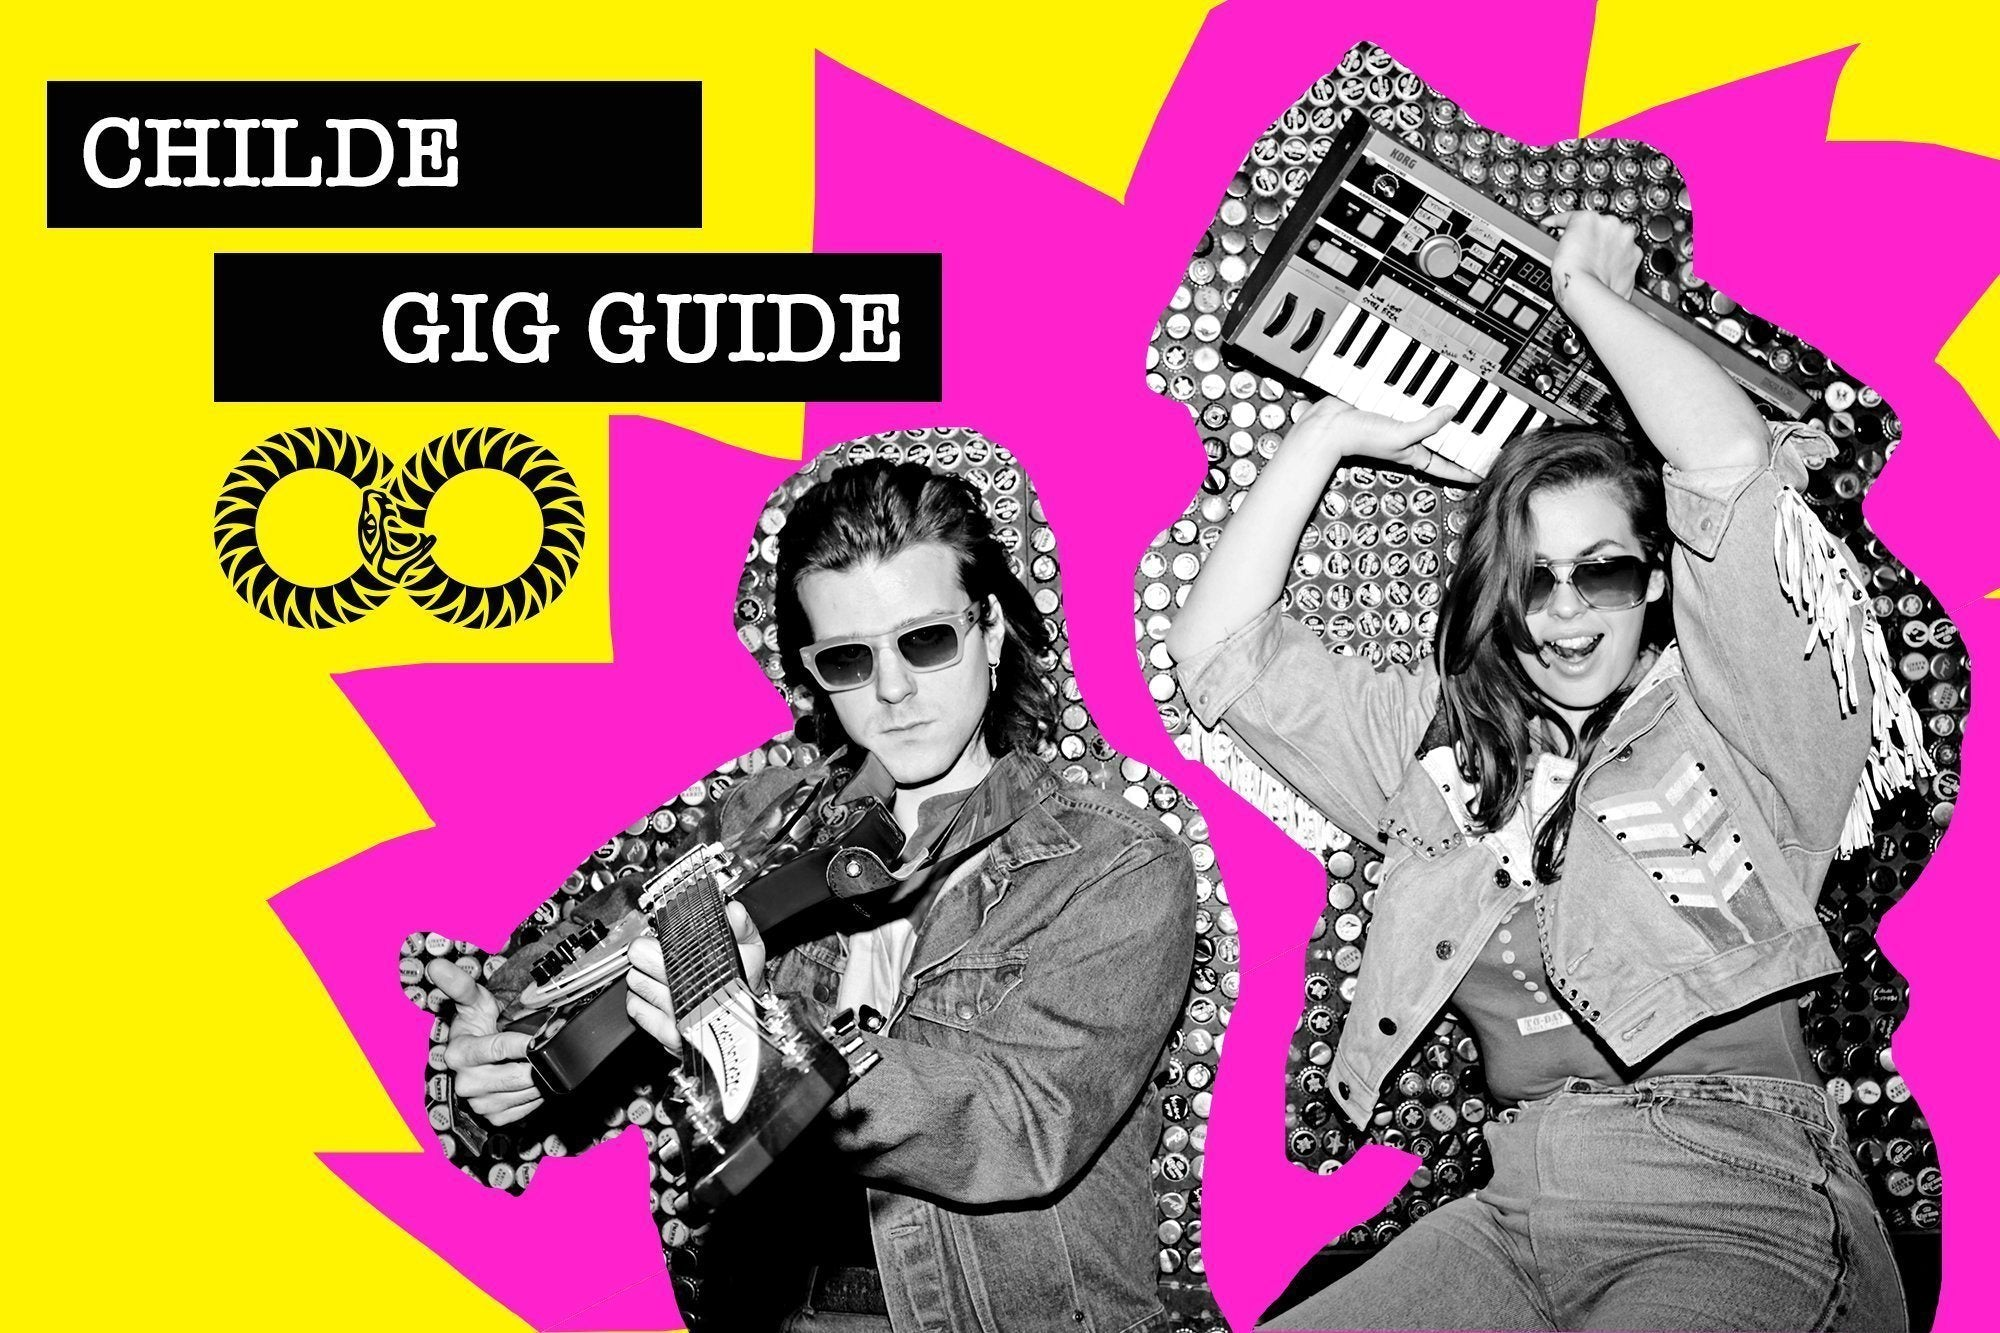 CHILDE | Gig Guide June 6